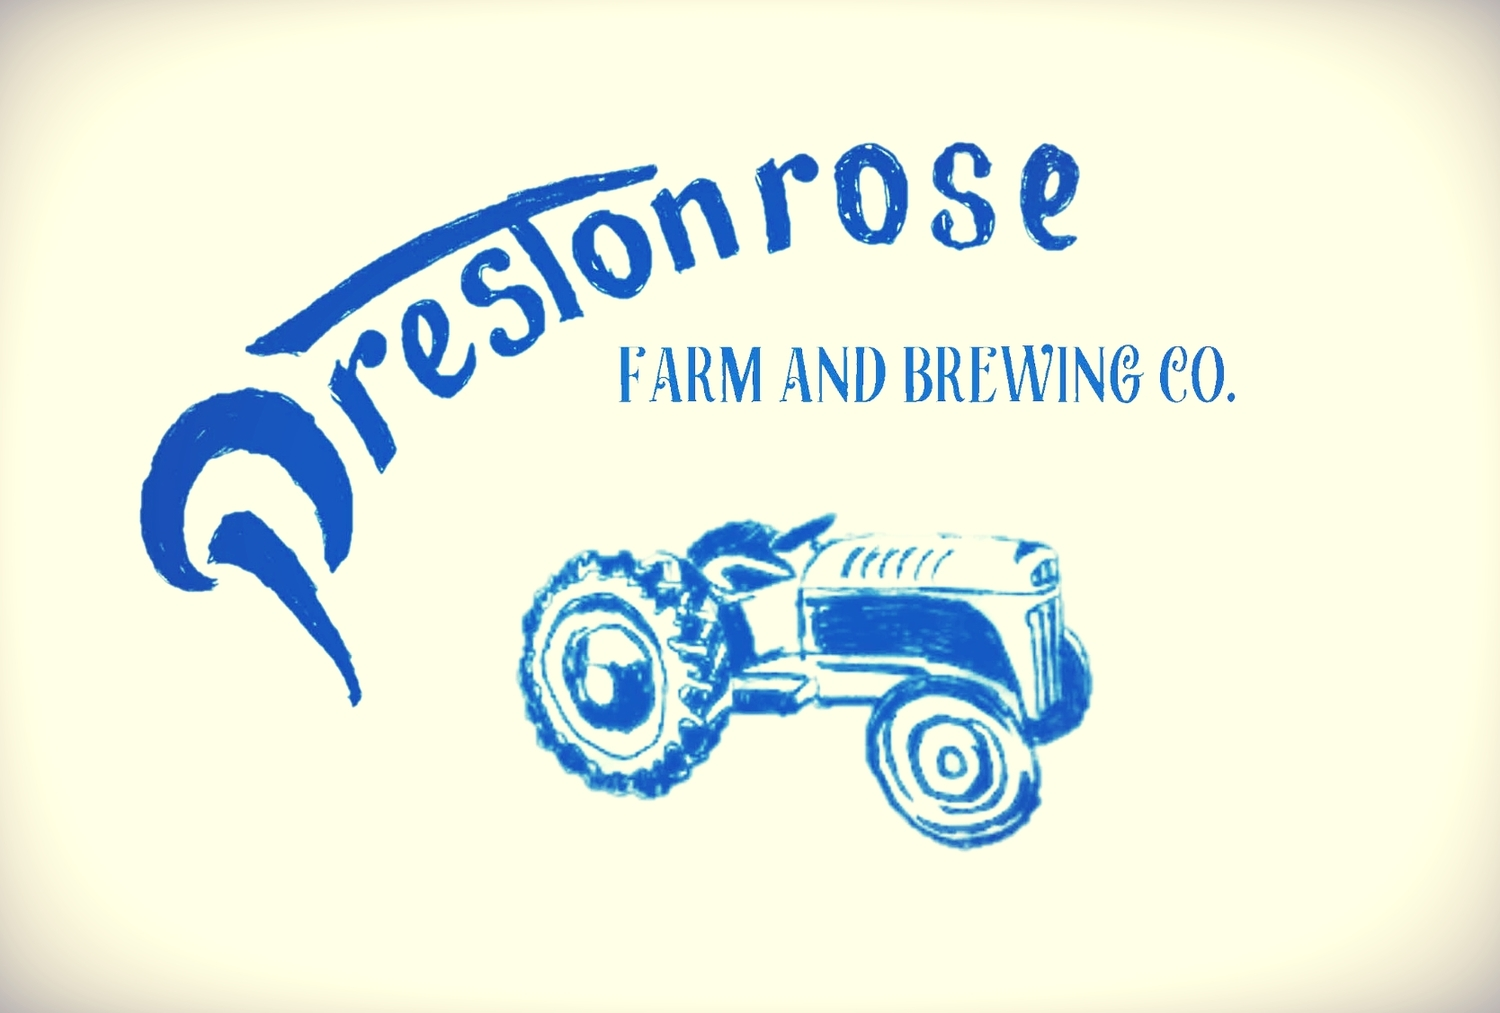 Prestonrose Farm and Brewing Co.